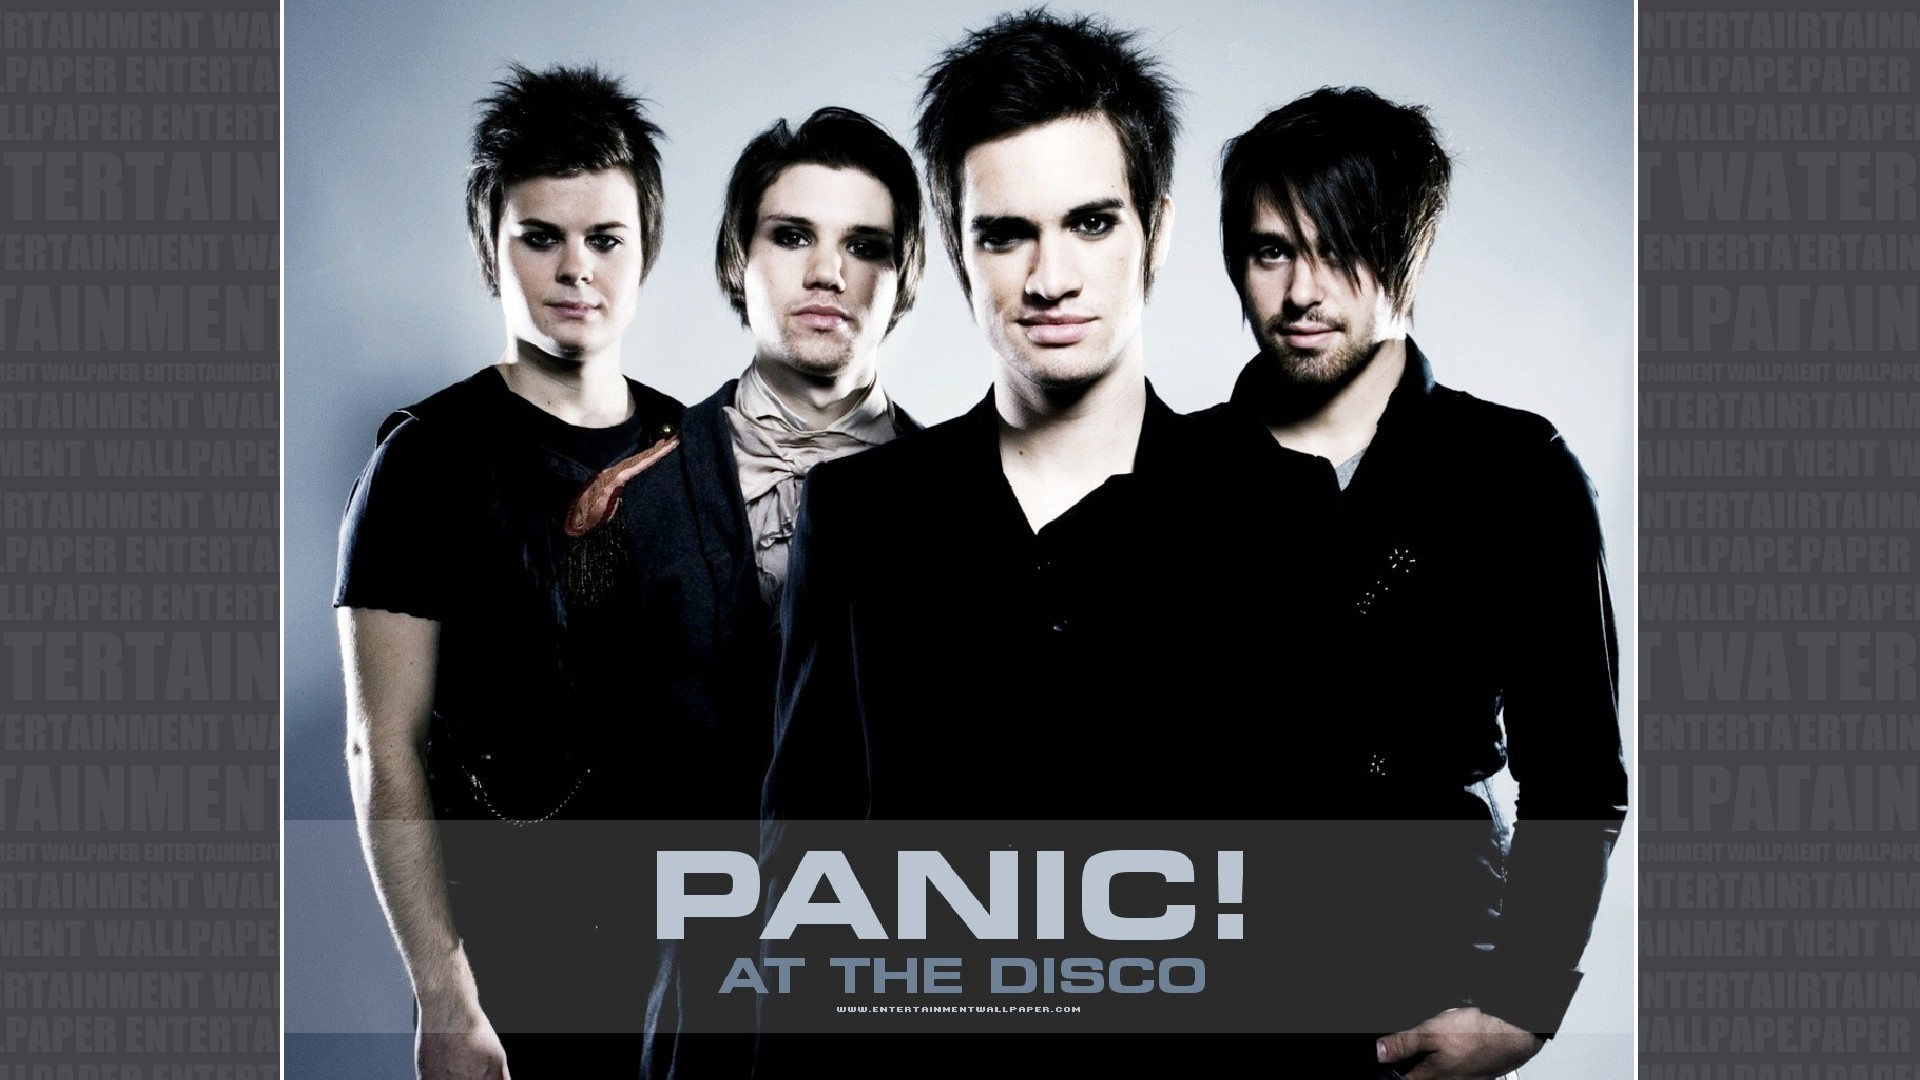 Panic At the Disco Wallpaper – Original size, download now.